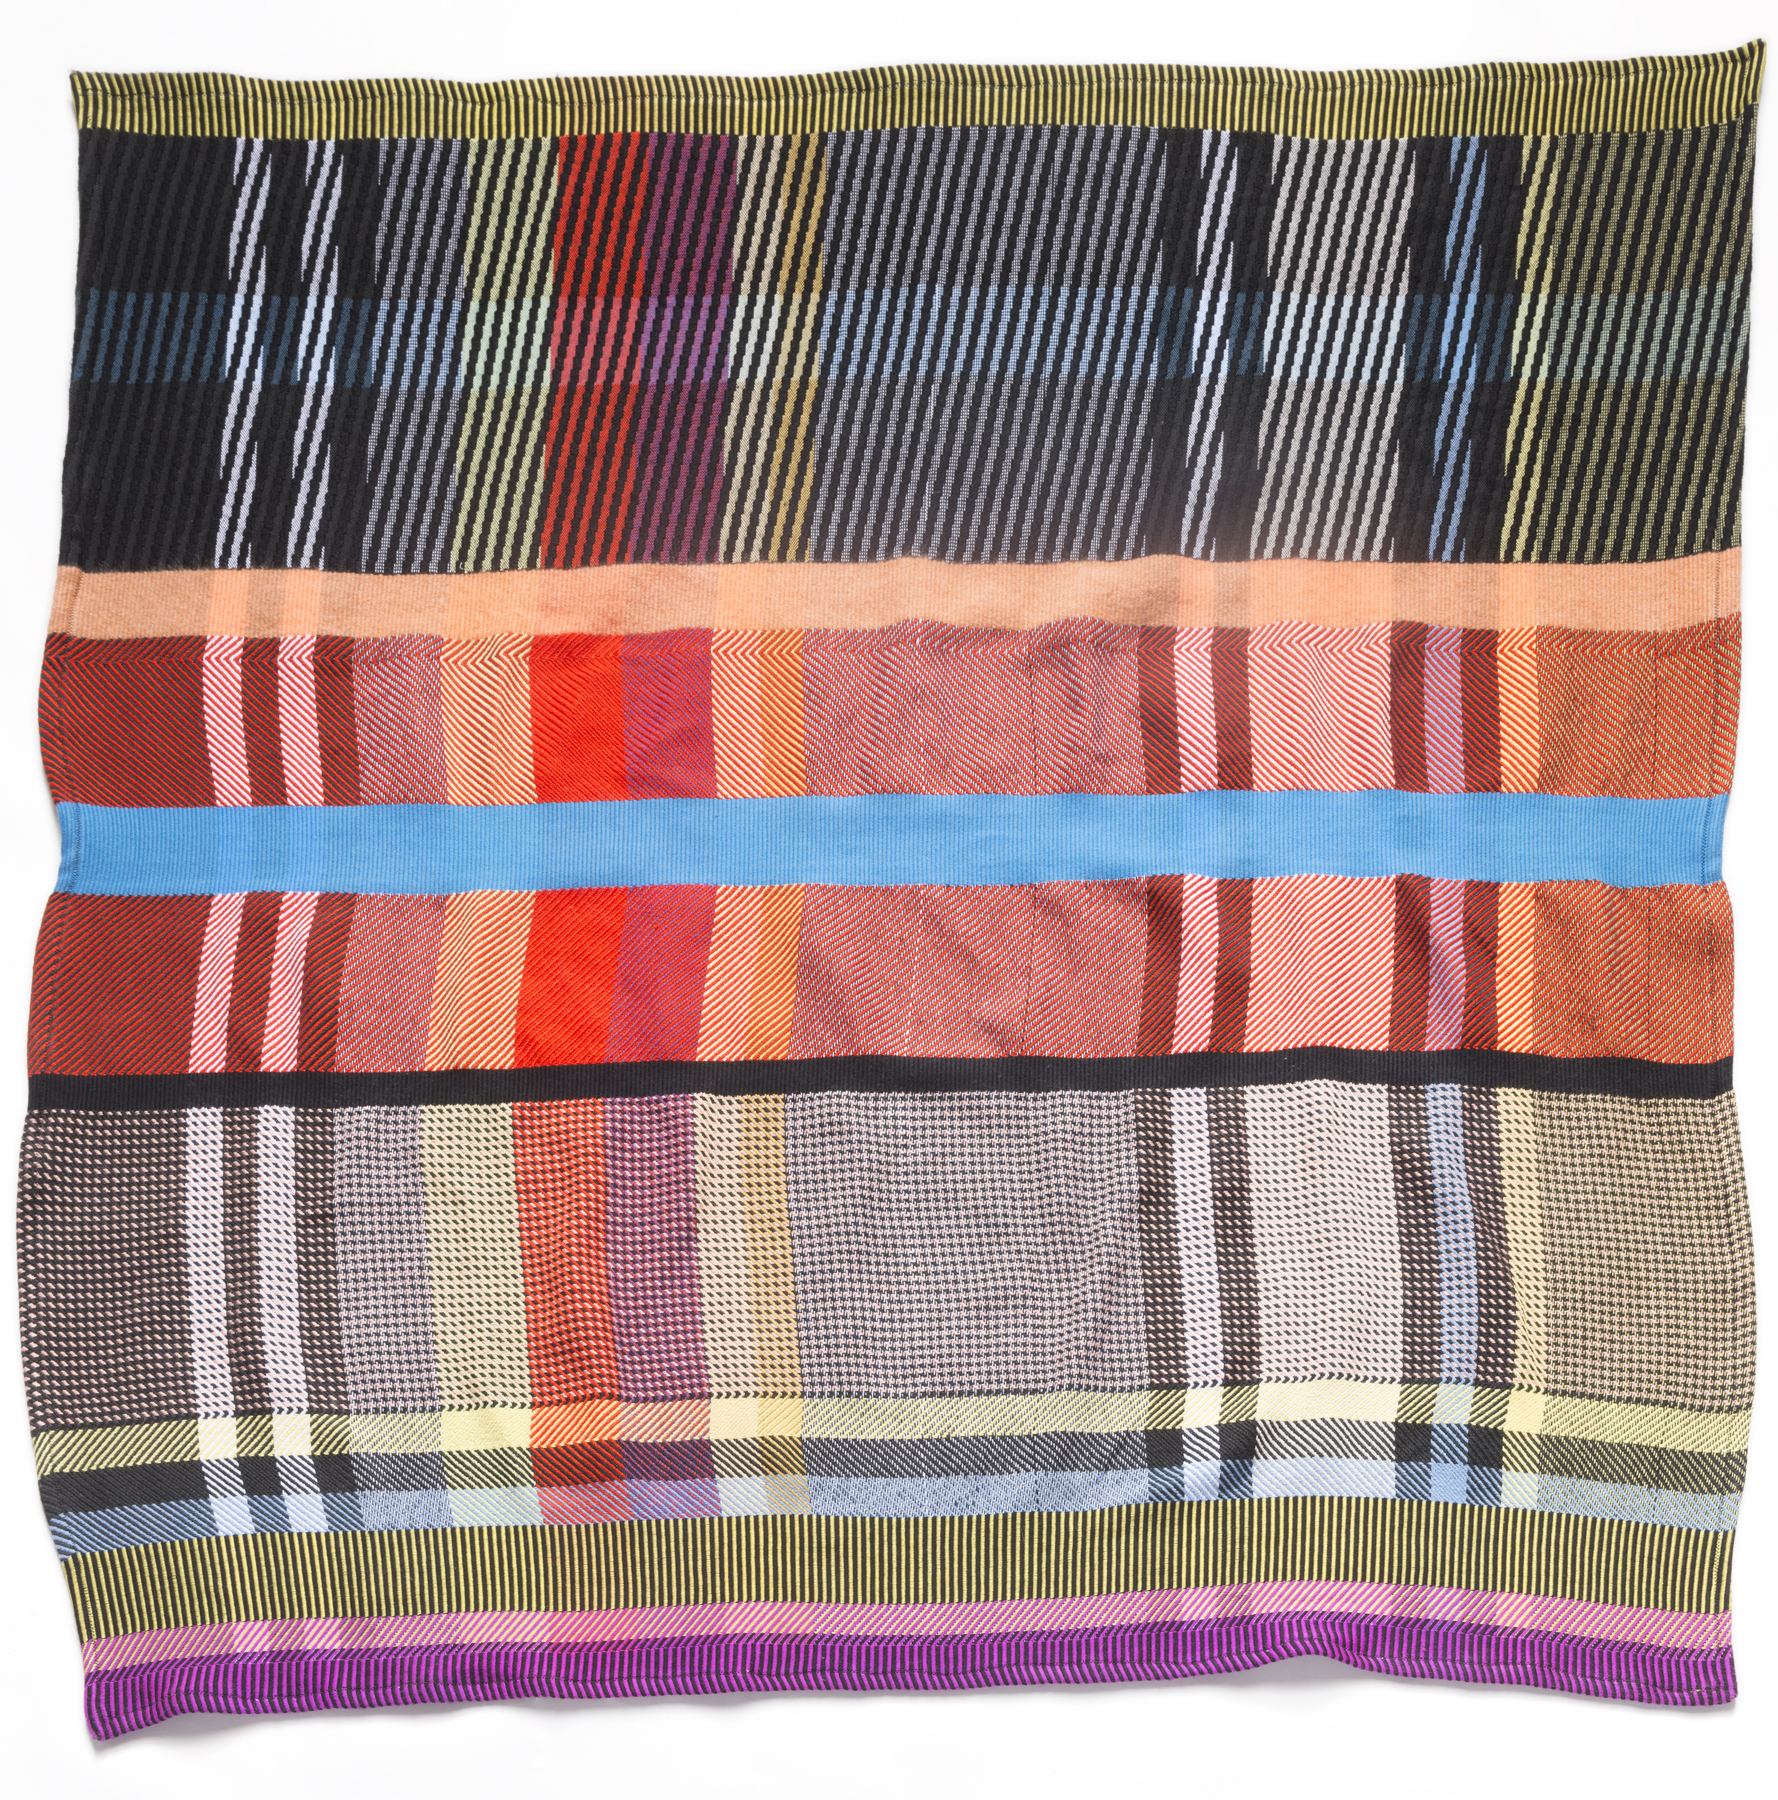 SW/TWM PLAID: Plaid comes from the Scottish Gaelic term  plaide , or blanket. This blanket is a complex plaid built out of the material, visual and structural terms developed by SW during her time at TWM. The final composition is a result of numerous iterations made at full-scale on the big loom.